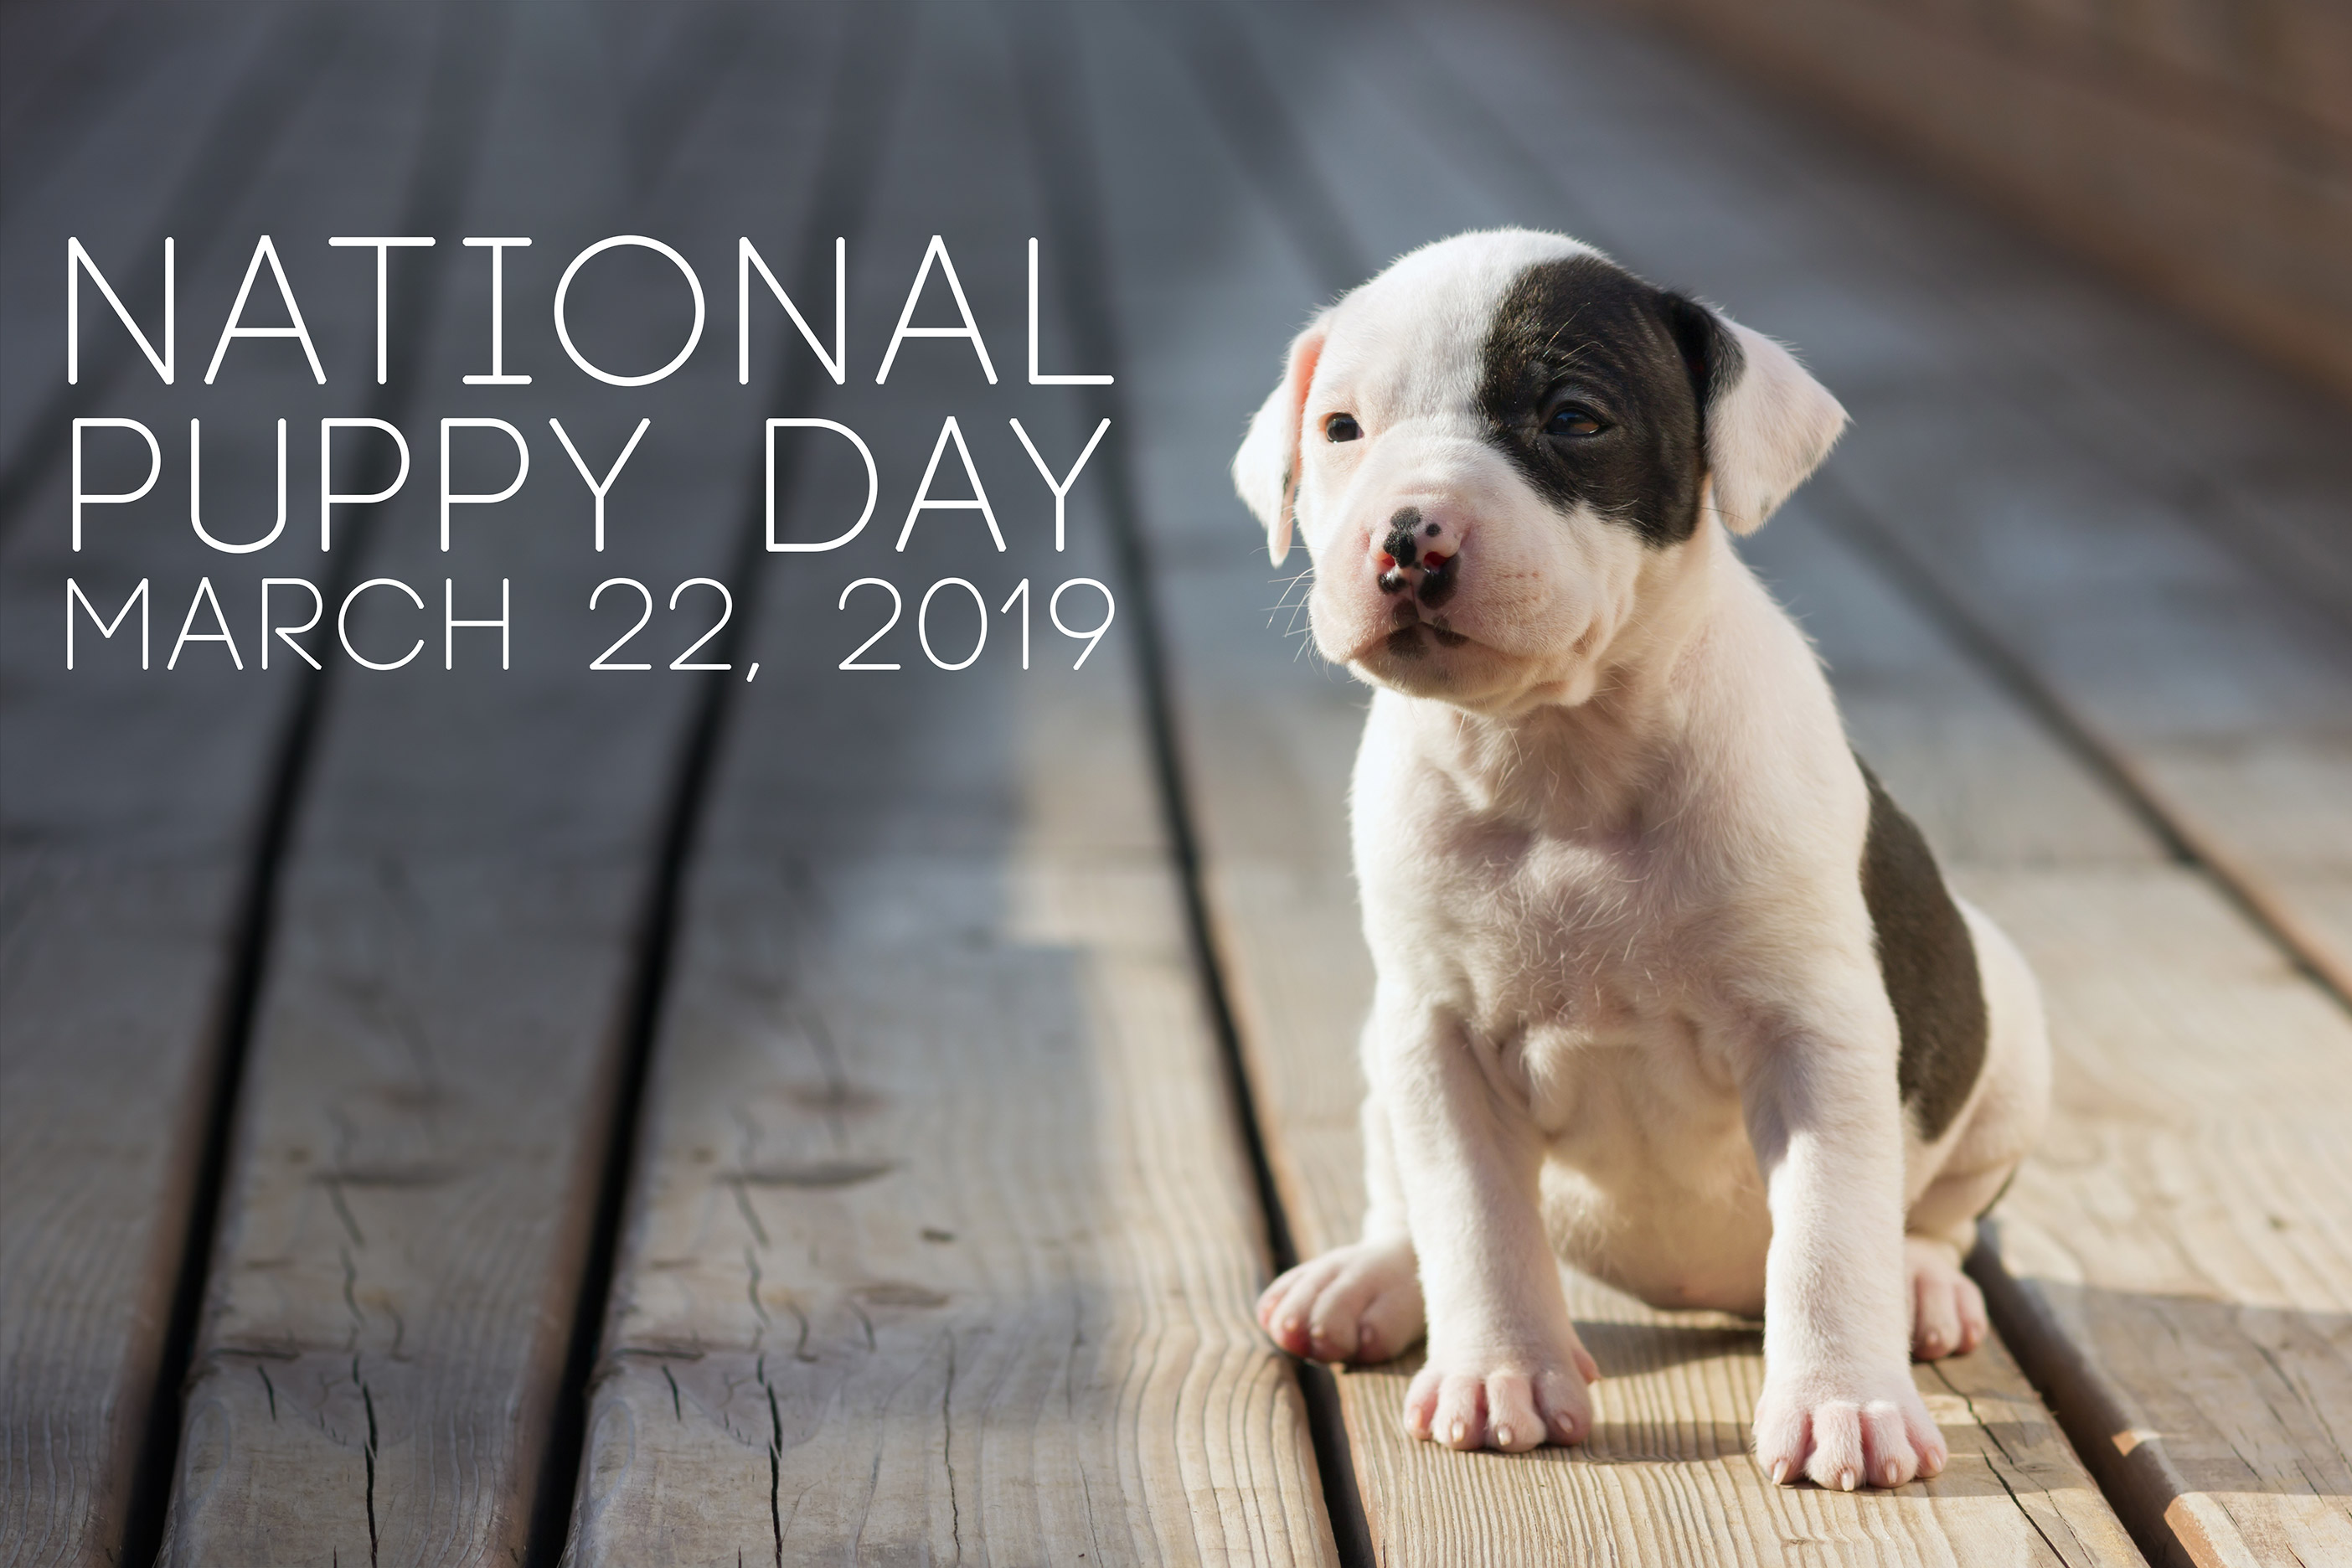 National Puppy Day March 22, 2019_